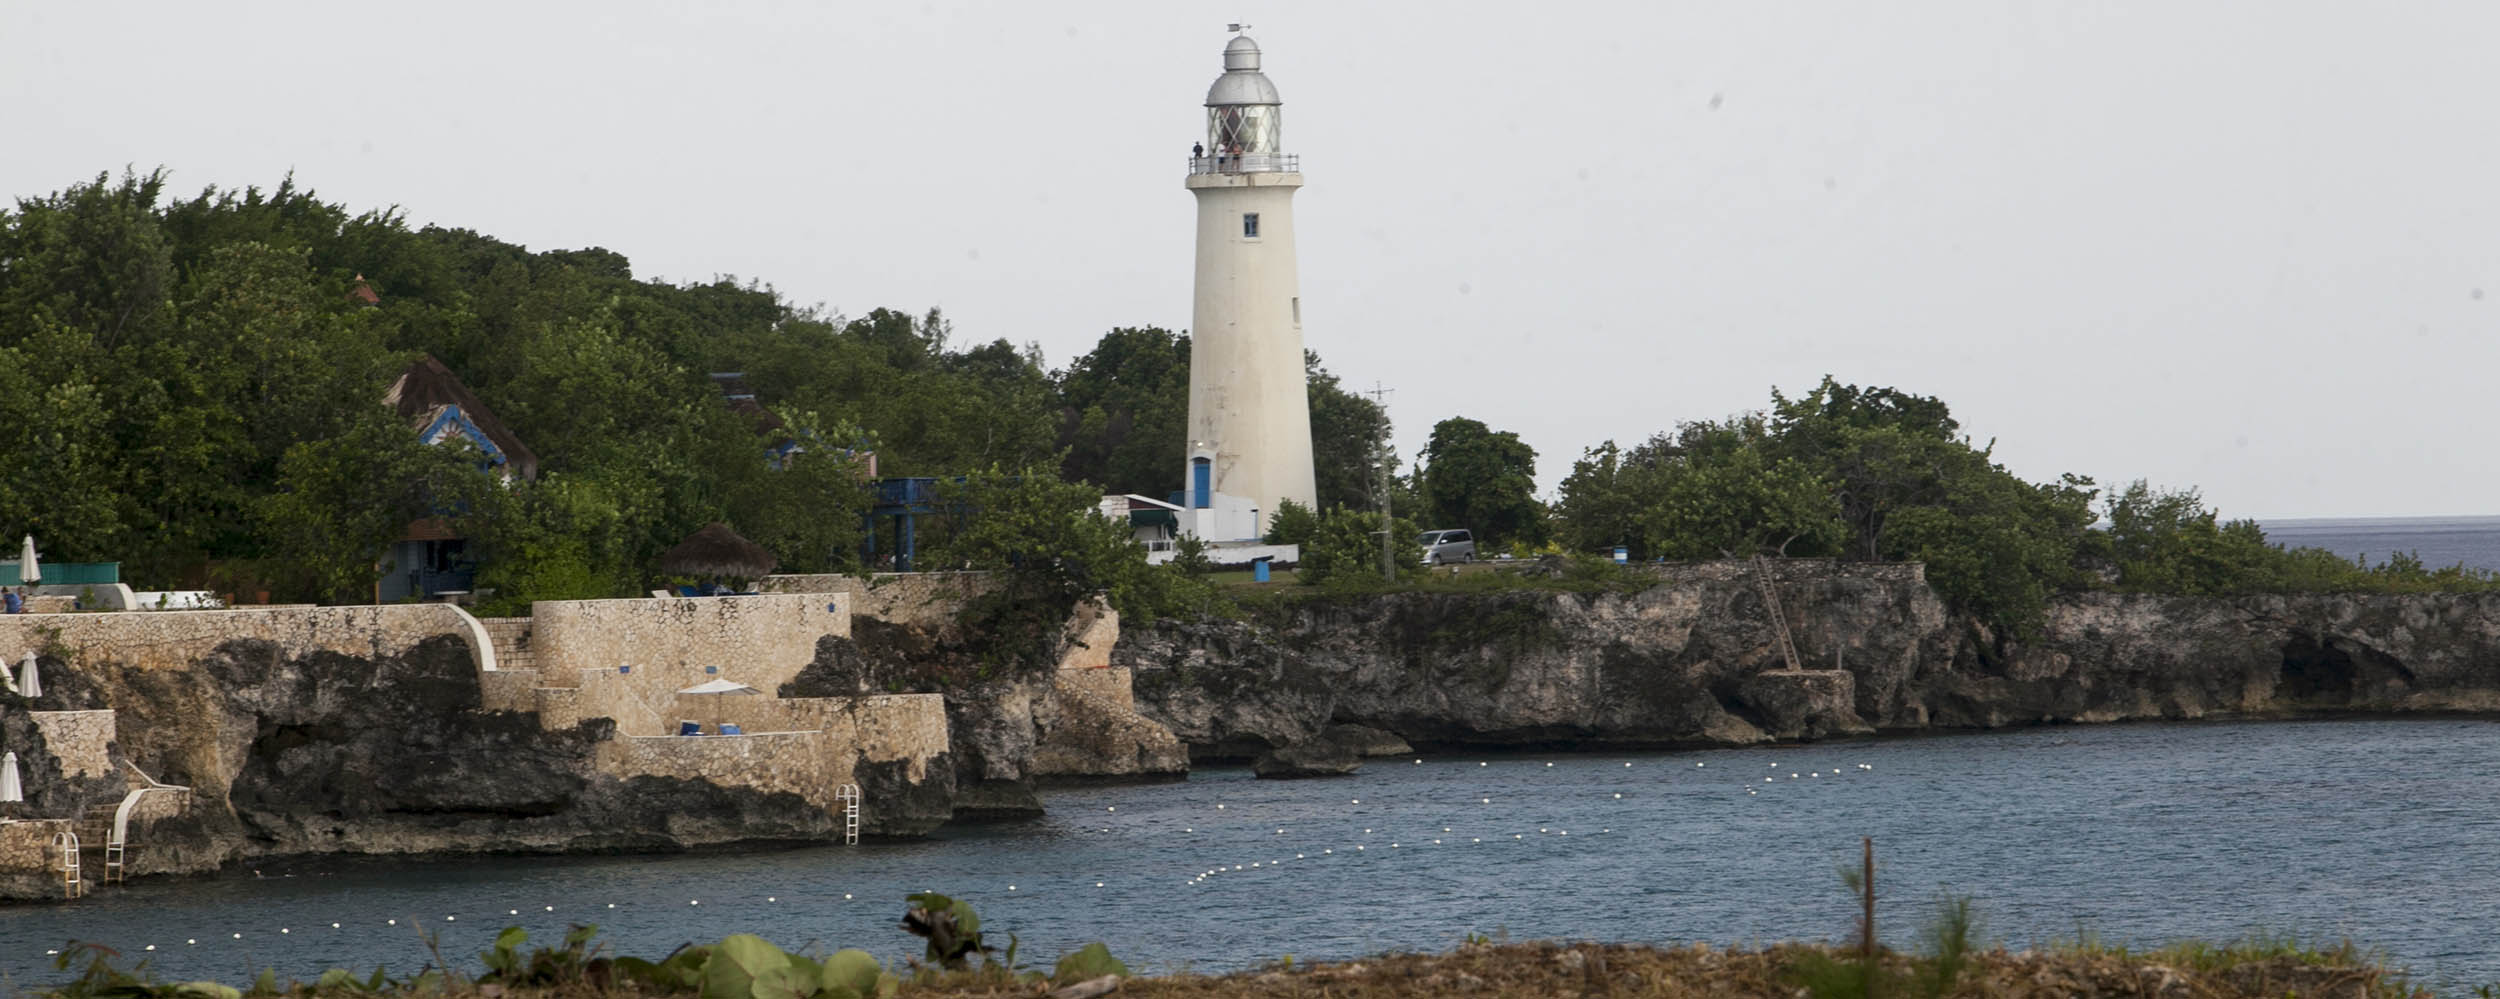 Negril Lighthouse - West End, Negril Jamaica